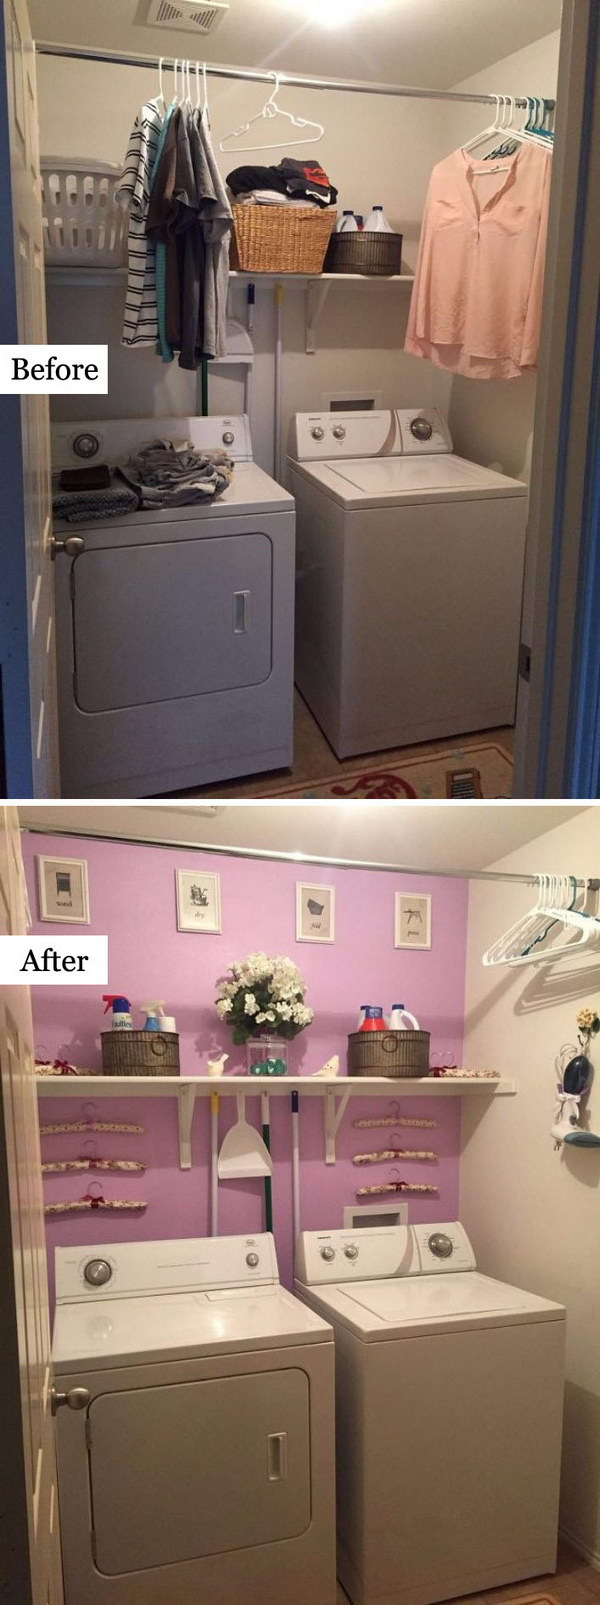 25 Creative Before and After Laundry Room Makeovers to Inspire Your Next Renovation